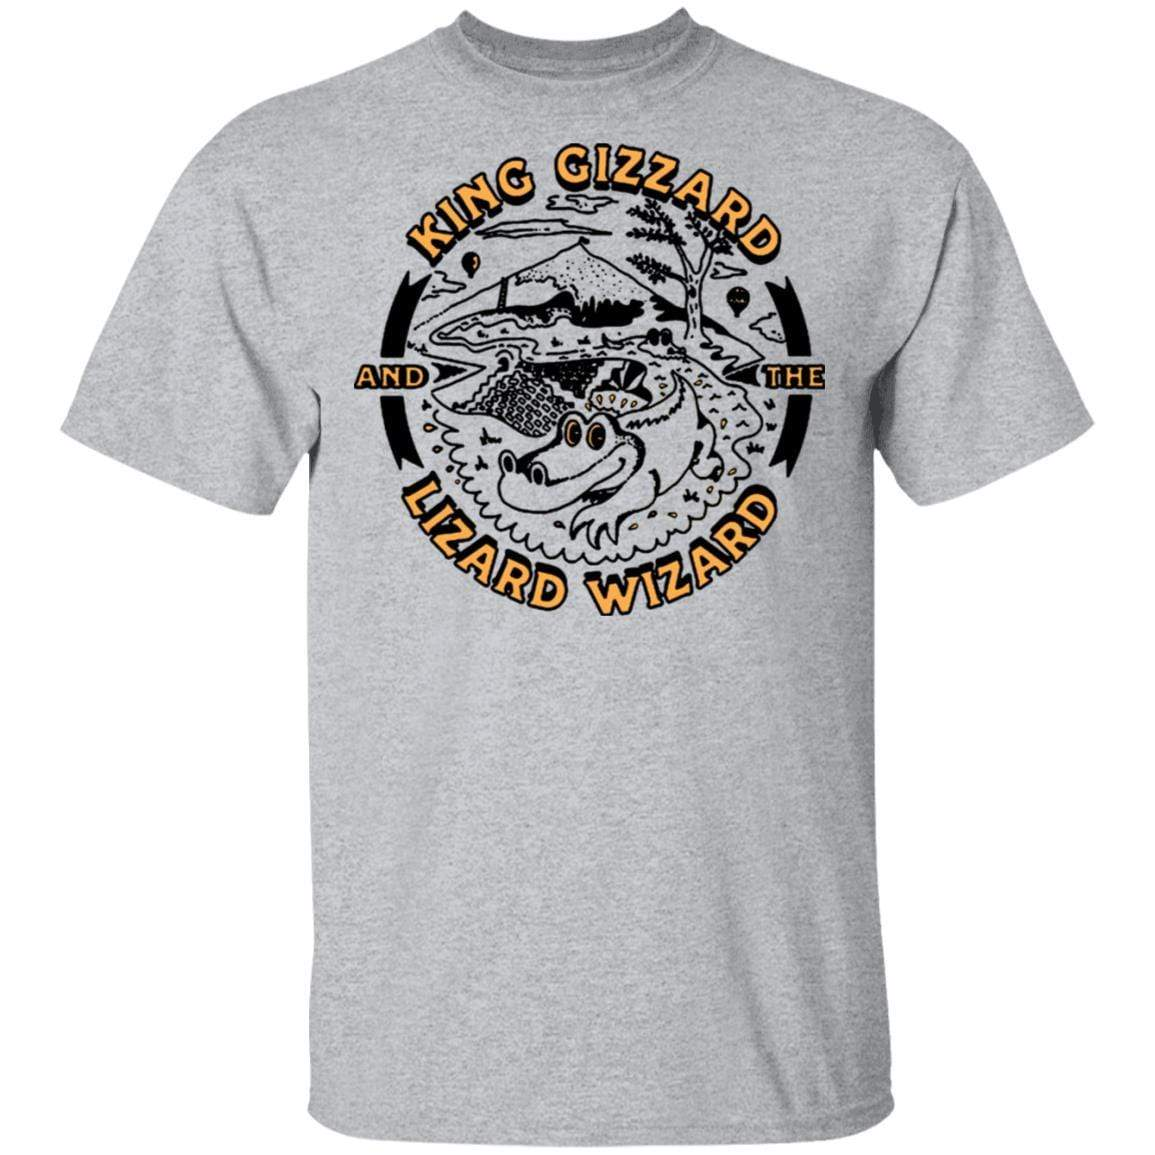 King Gizzard And The Lizard Wizard Gators Vintage T-Shirts, Hoodies 1049-9972-88477983-48200 - Tee Ript